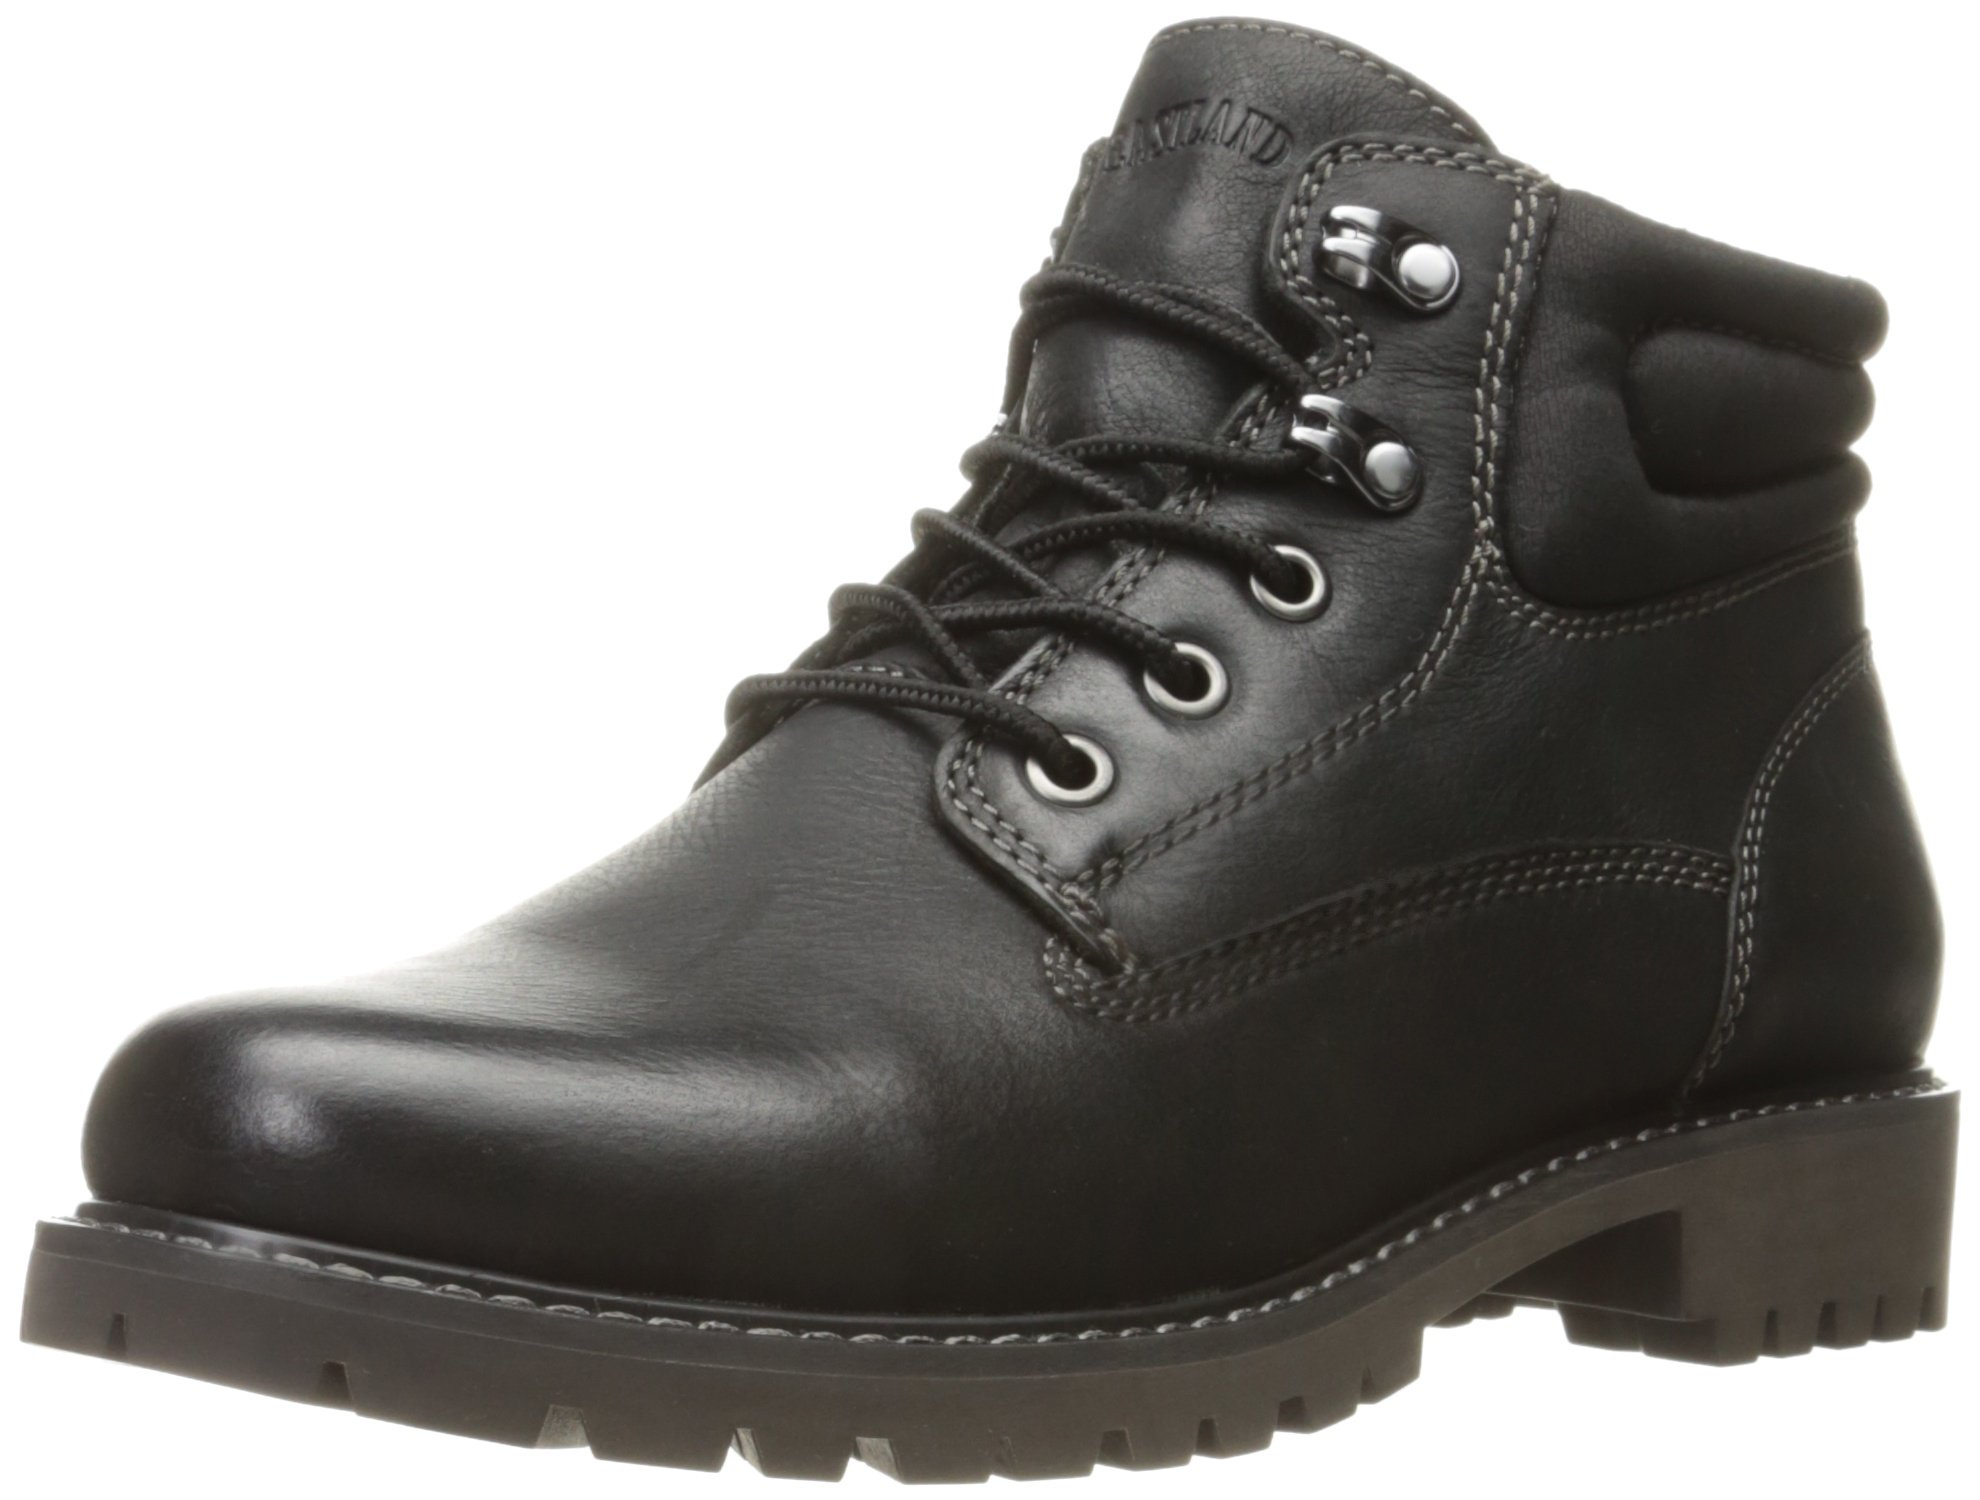 Eastland Women's Edith Chukka Boot, Black, 9 M US